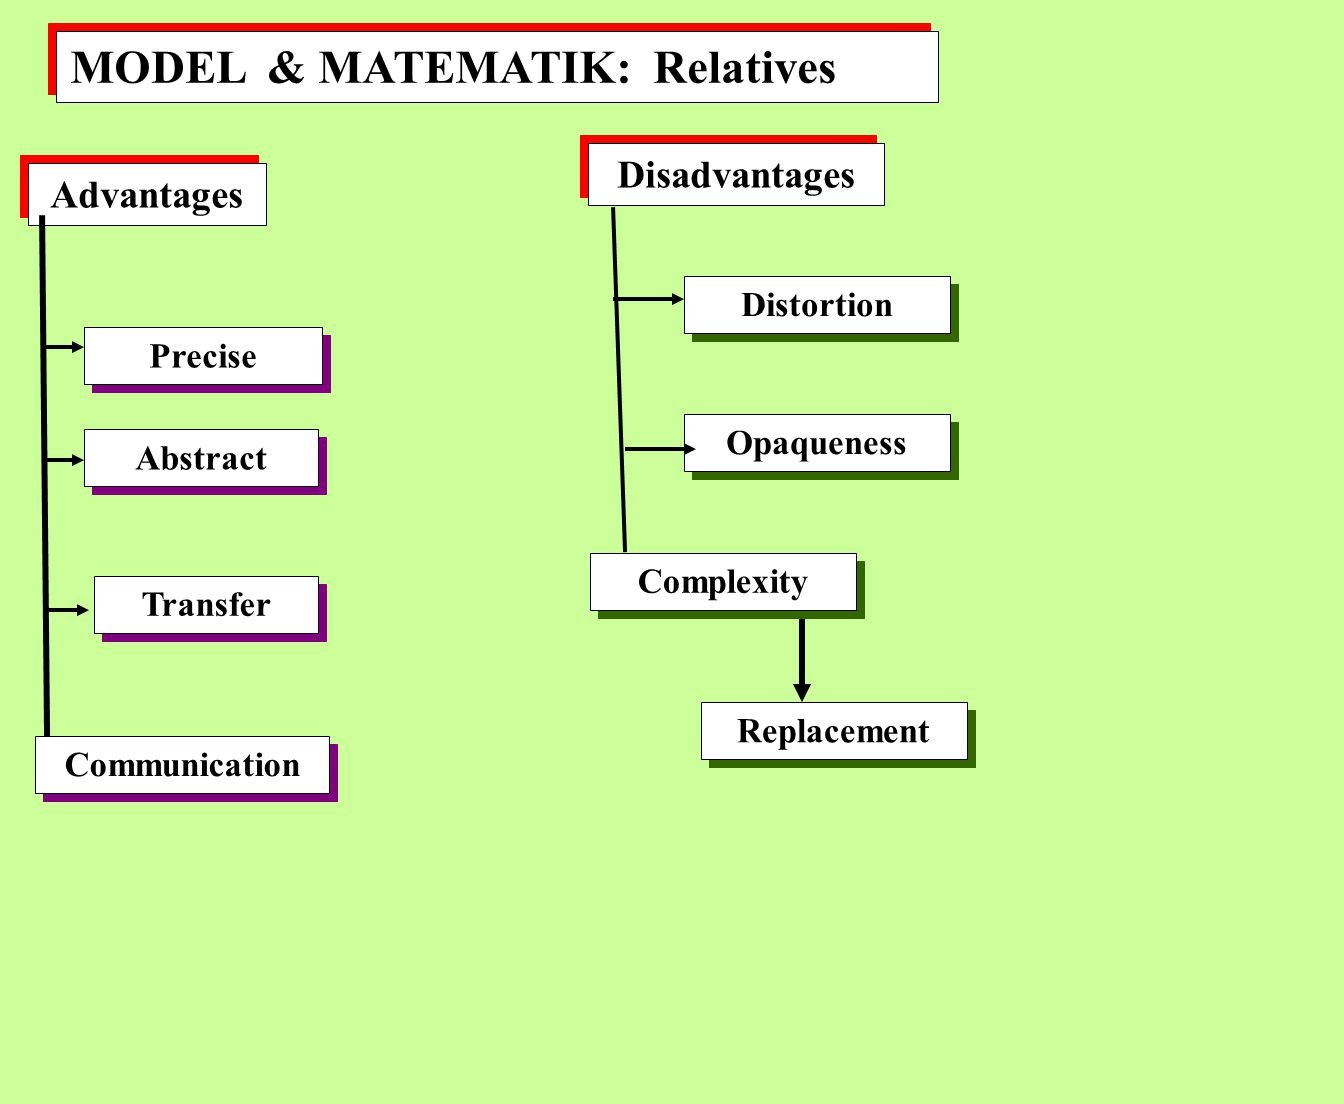 MODEL & MATEMATIK: Relatives Advantages Disadvantages Precise Abstract Communication Distortion Opaqueness Transfer Complexity Replacement